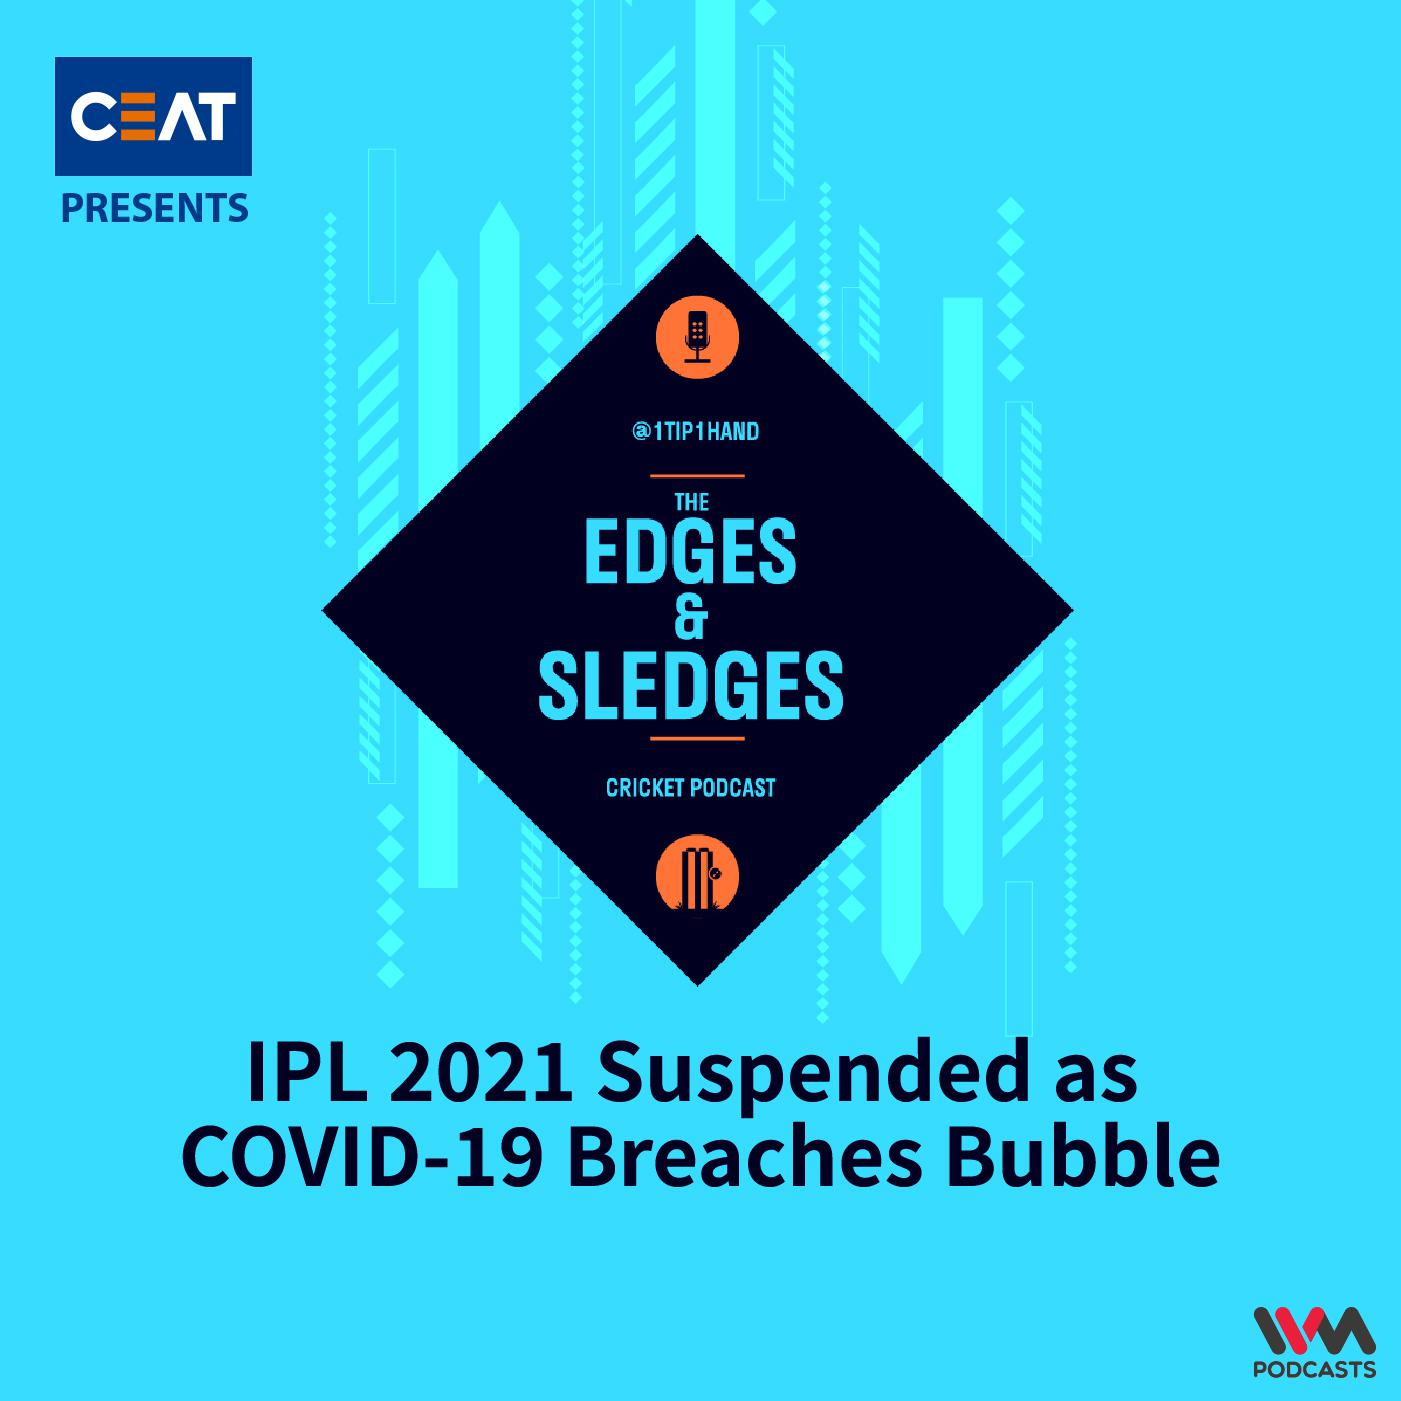 Ep. 173: IPL 2021 Suspended as COVID-19 Breaches Bubble